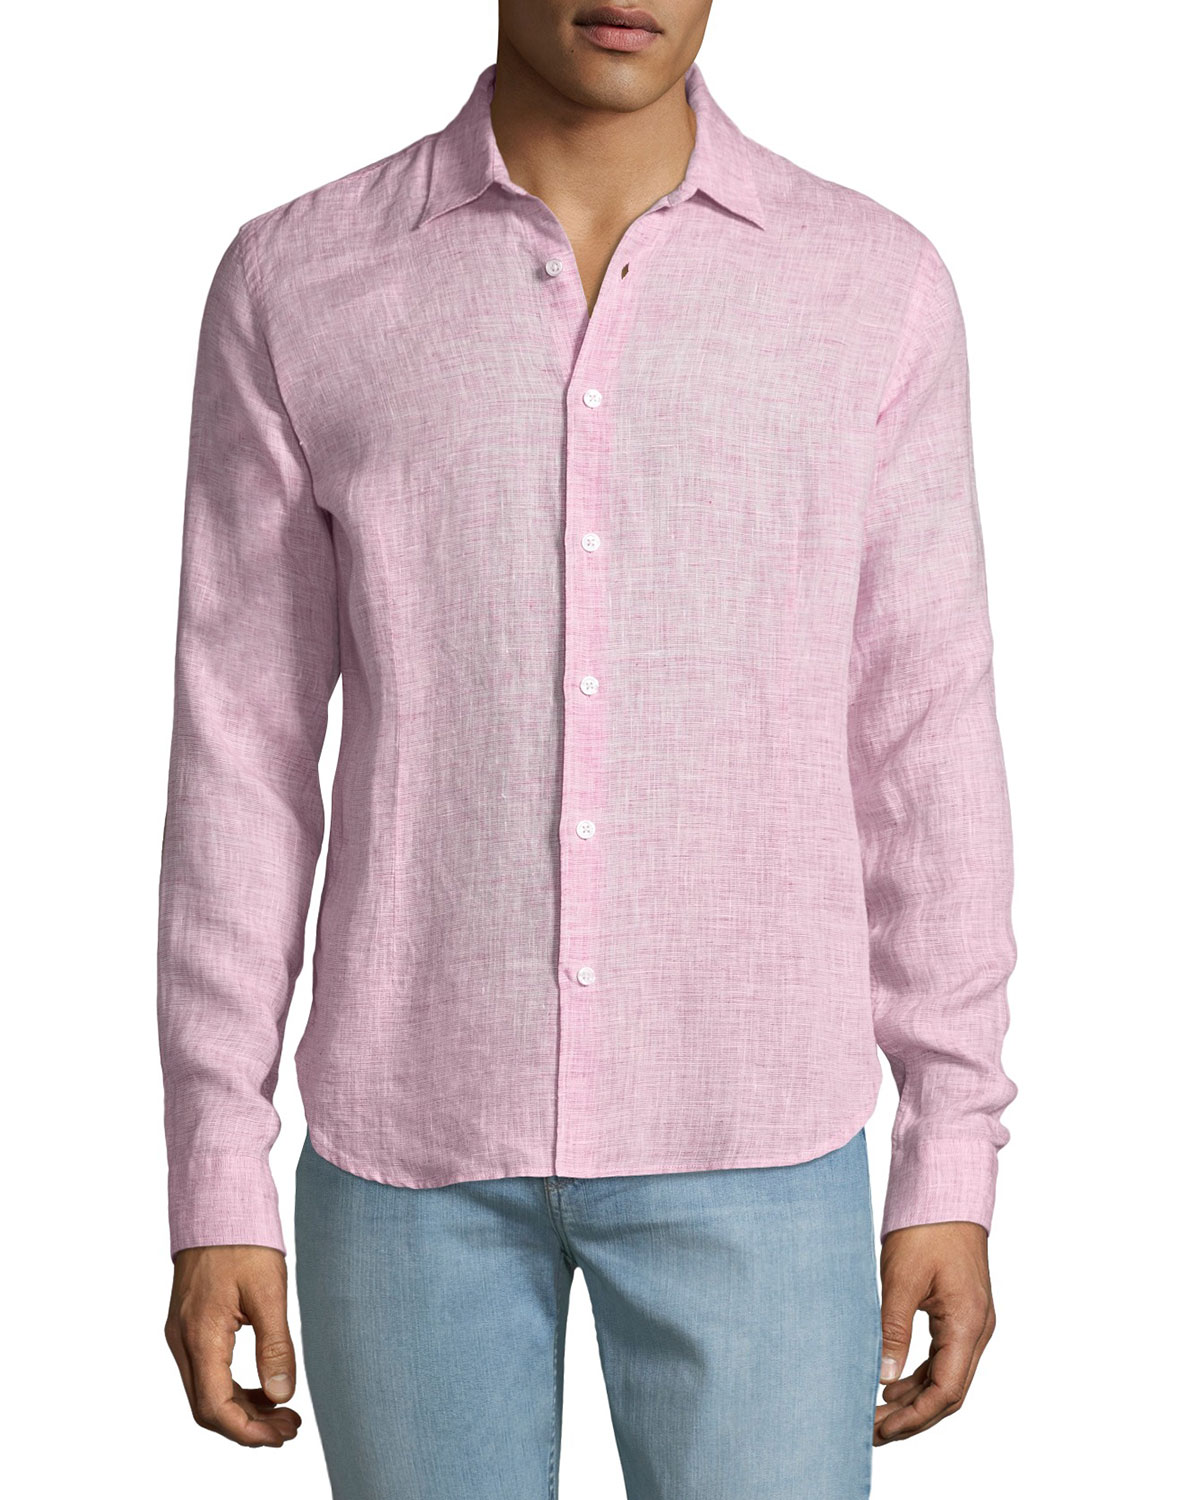 Orlebar Brown Men's Morton Tailored Sport Shirt, Pink